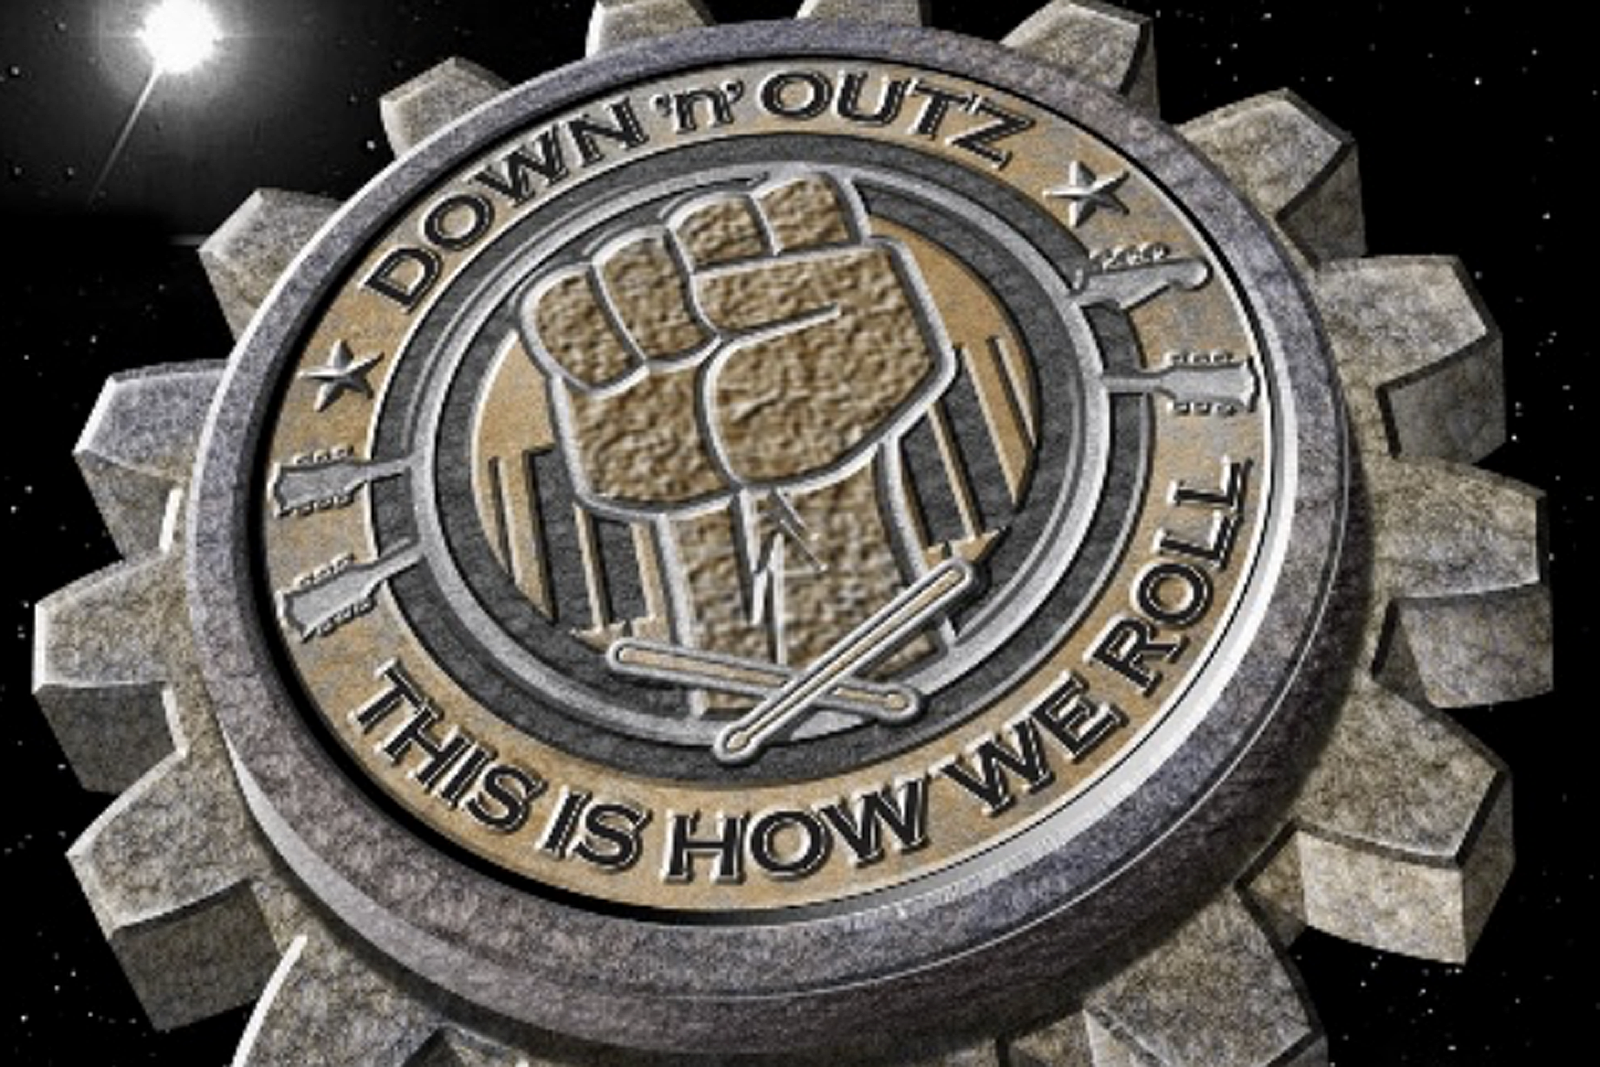 Joe Elliott's Down 'n' Outz to Release 'This Is How We Roll' Album